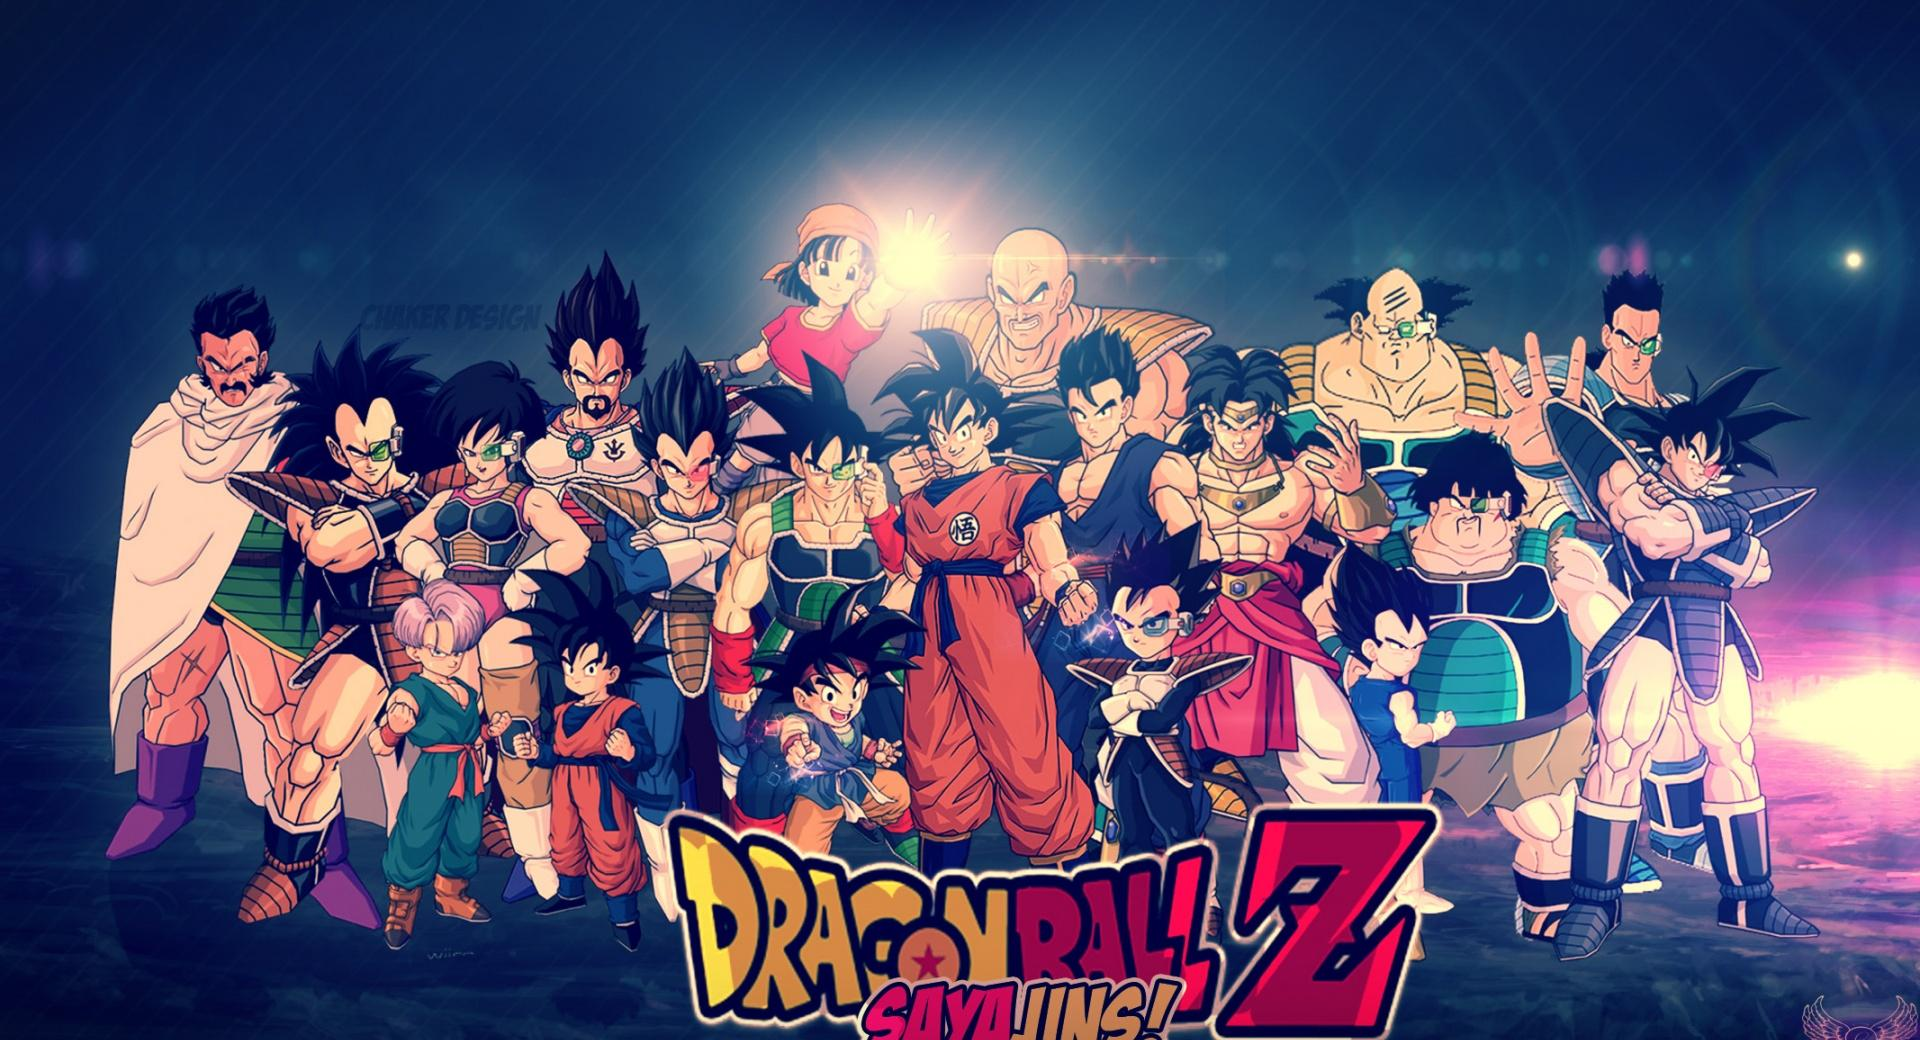 Dragon Ball Z - HD Wallpaper by Chaker Design wallpapers HD quality